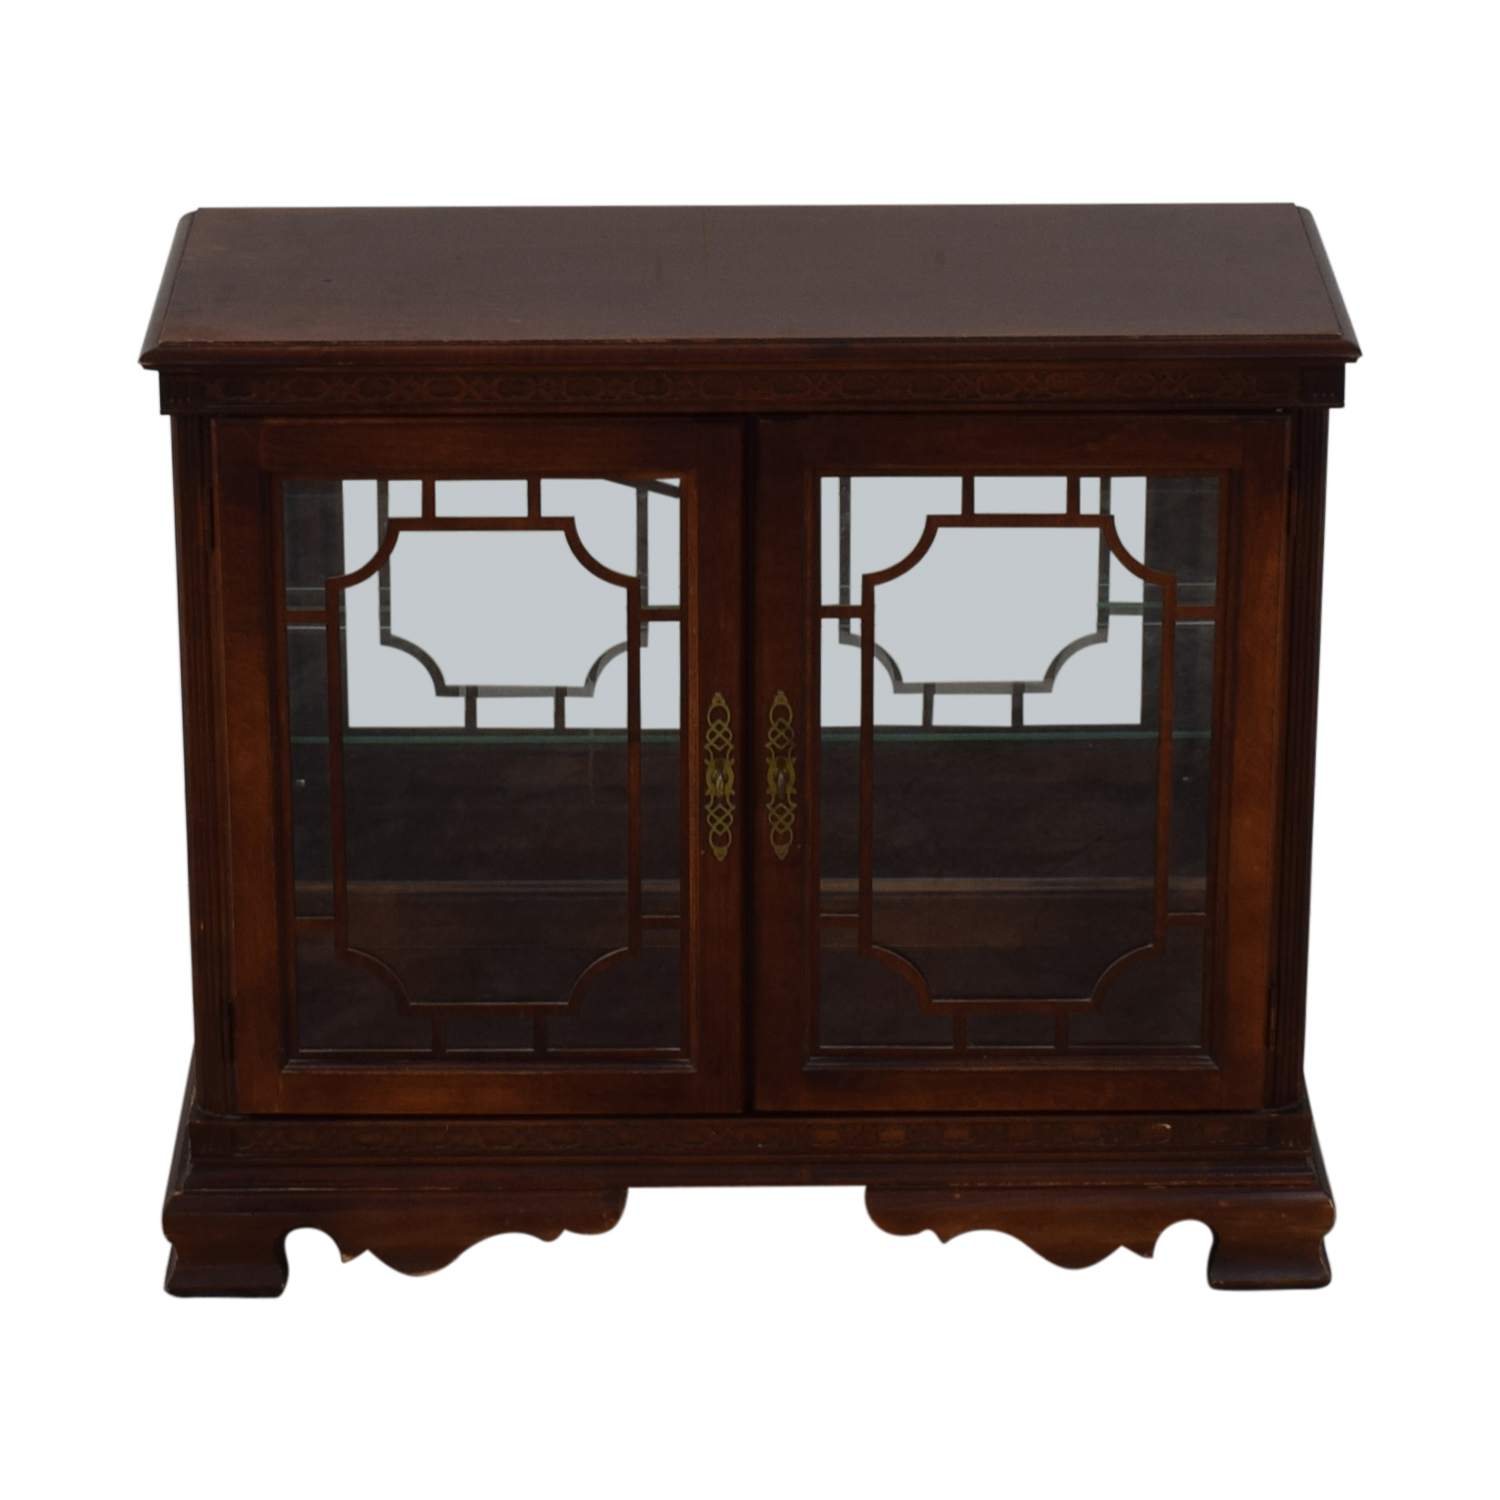 Pulaski Furniture Pulaski Antique Cabinet on sale